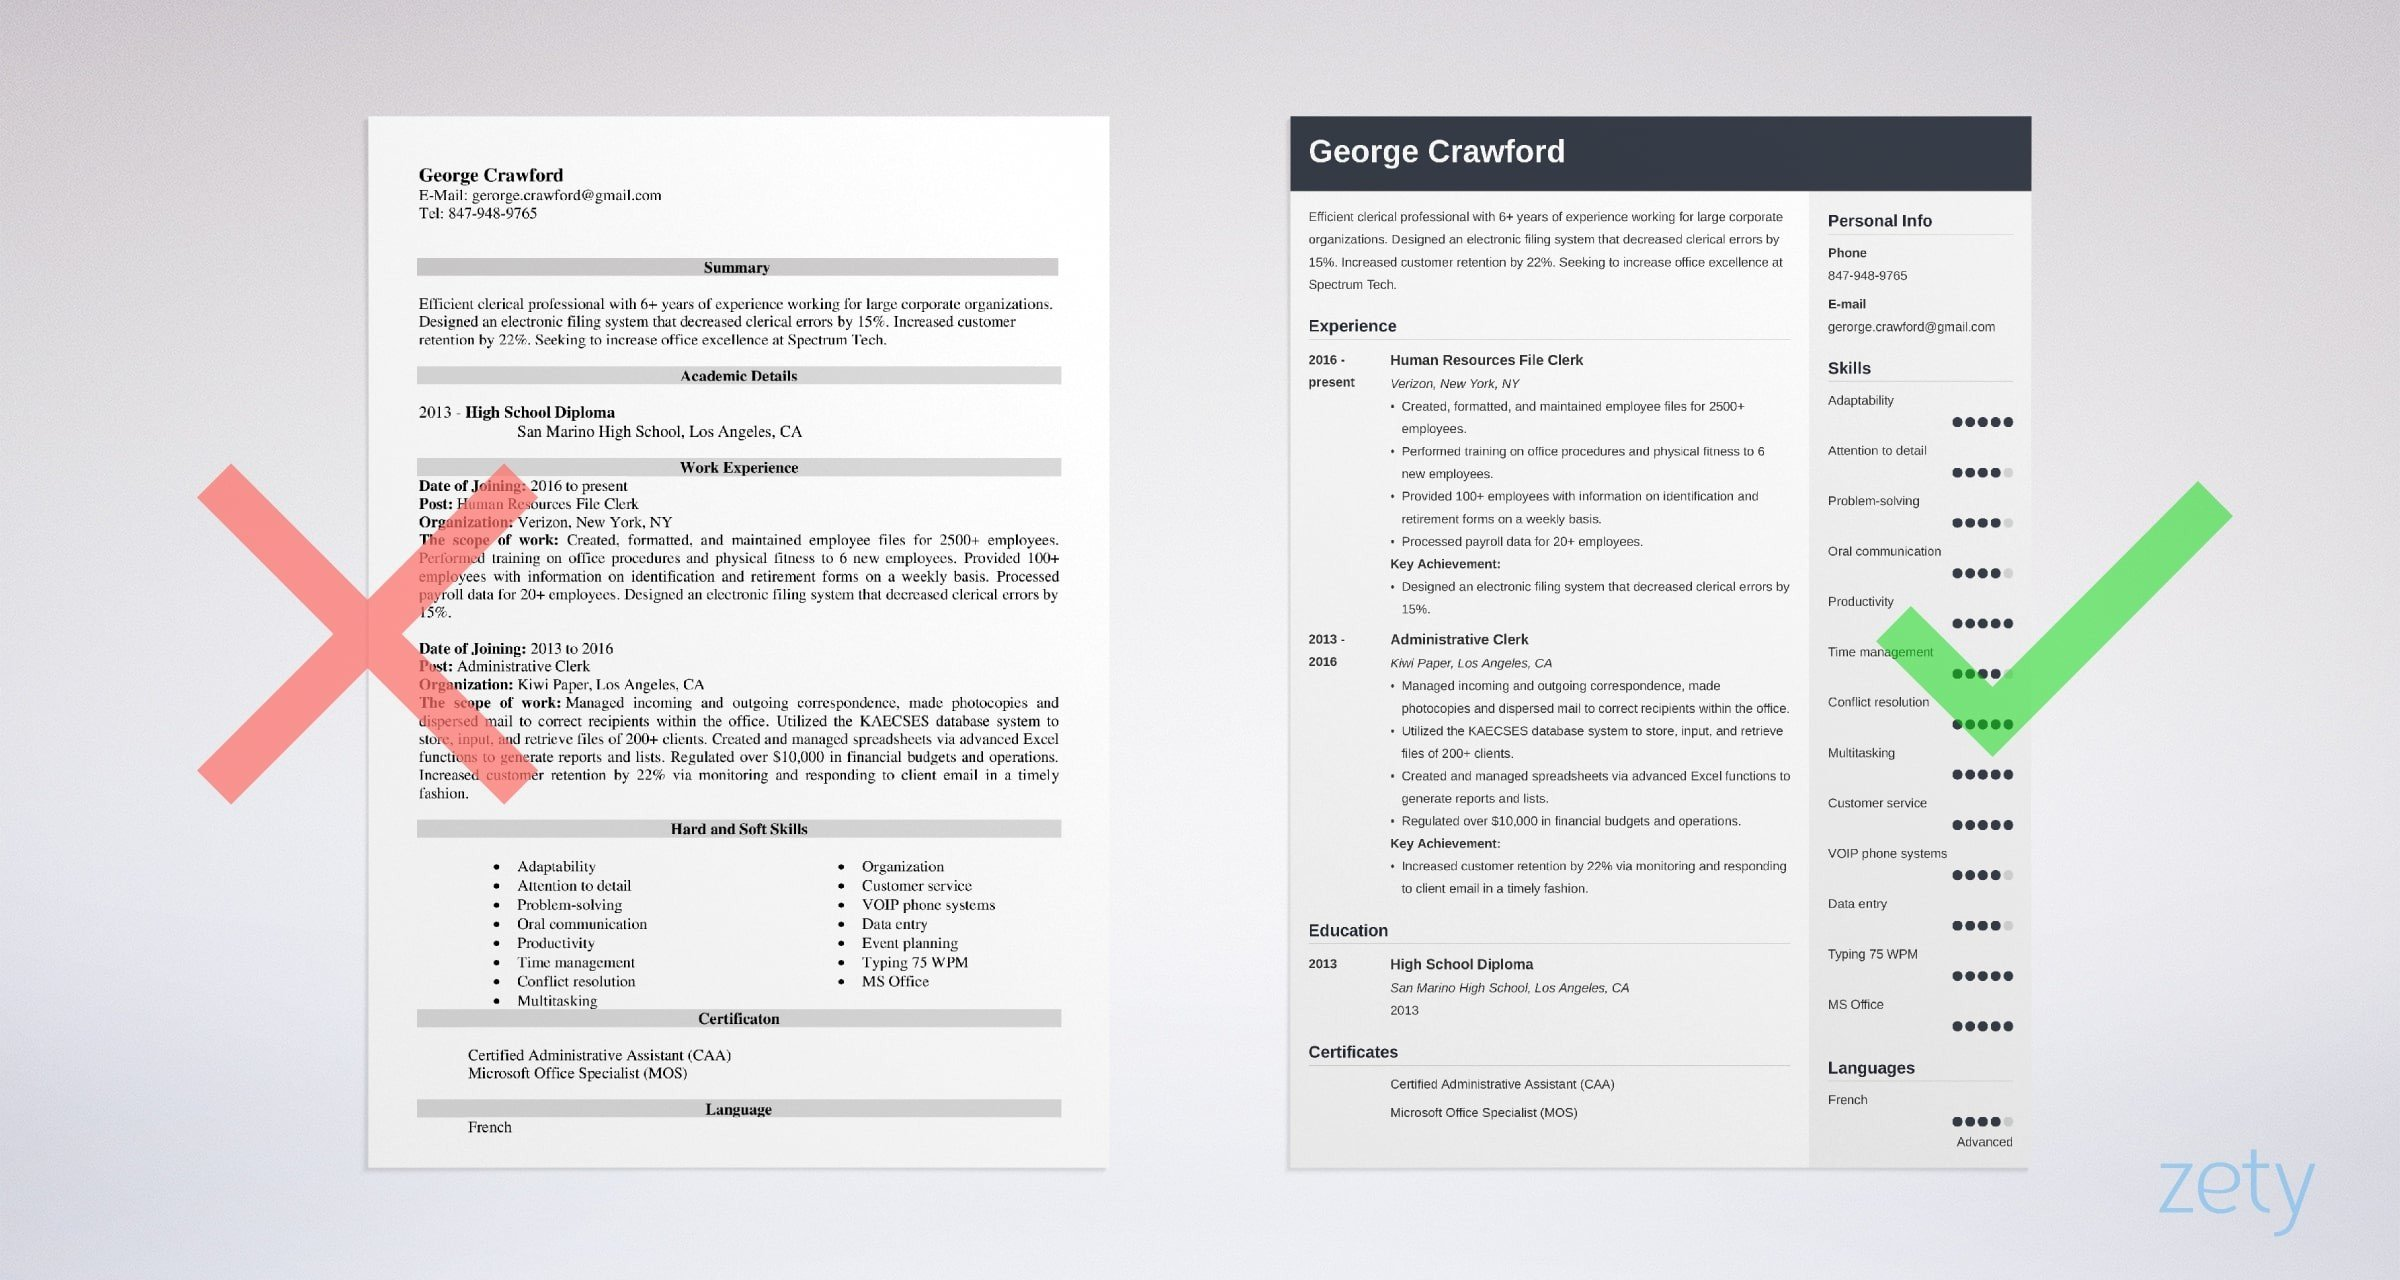 Clerical job resume essay on modern technology in communication